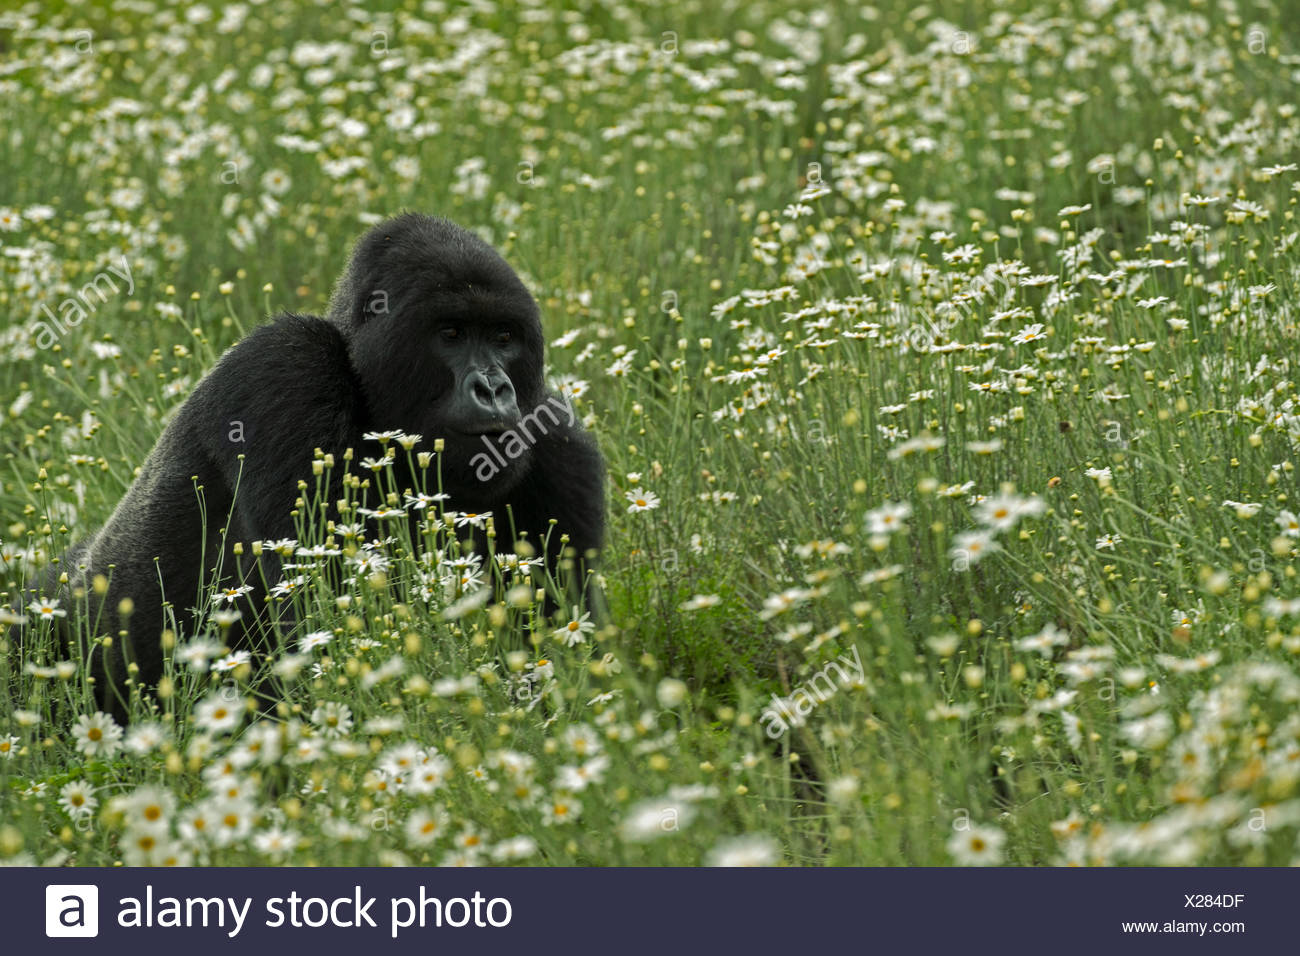 A mountain gorilla rests outside Volcanoes National Park. - Stock Image